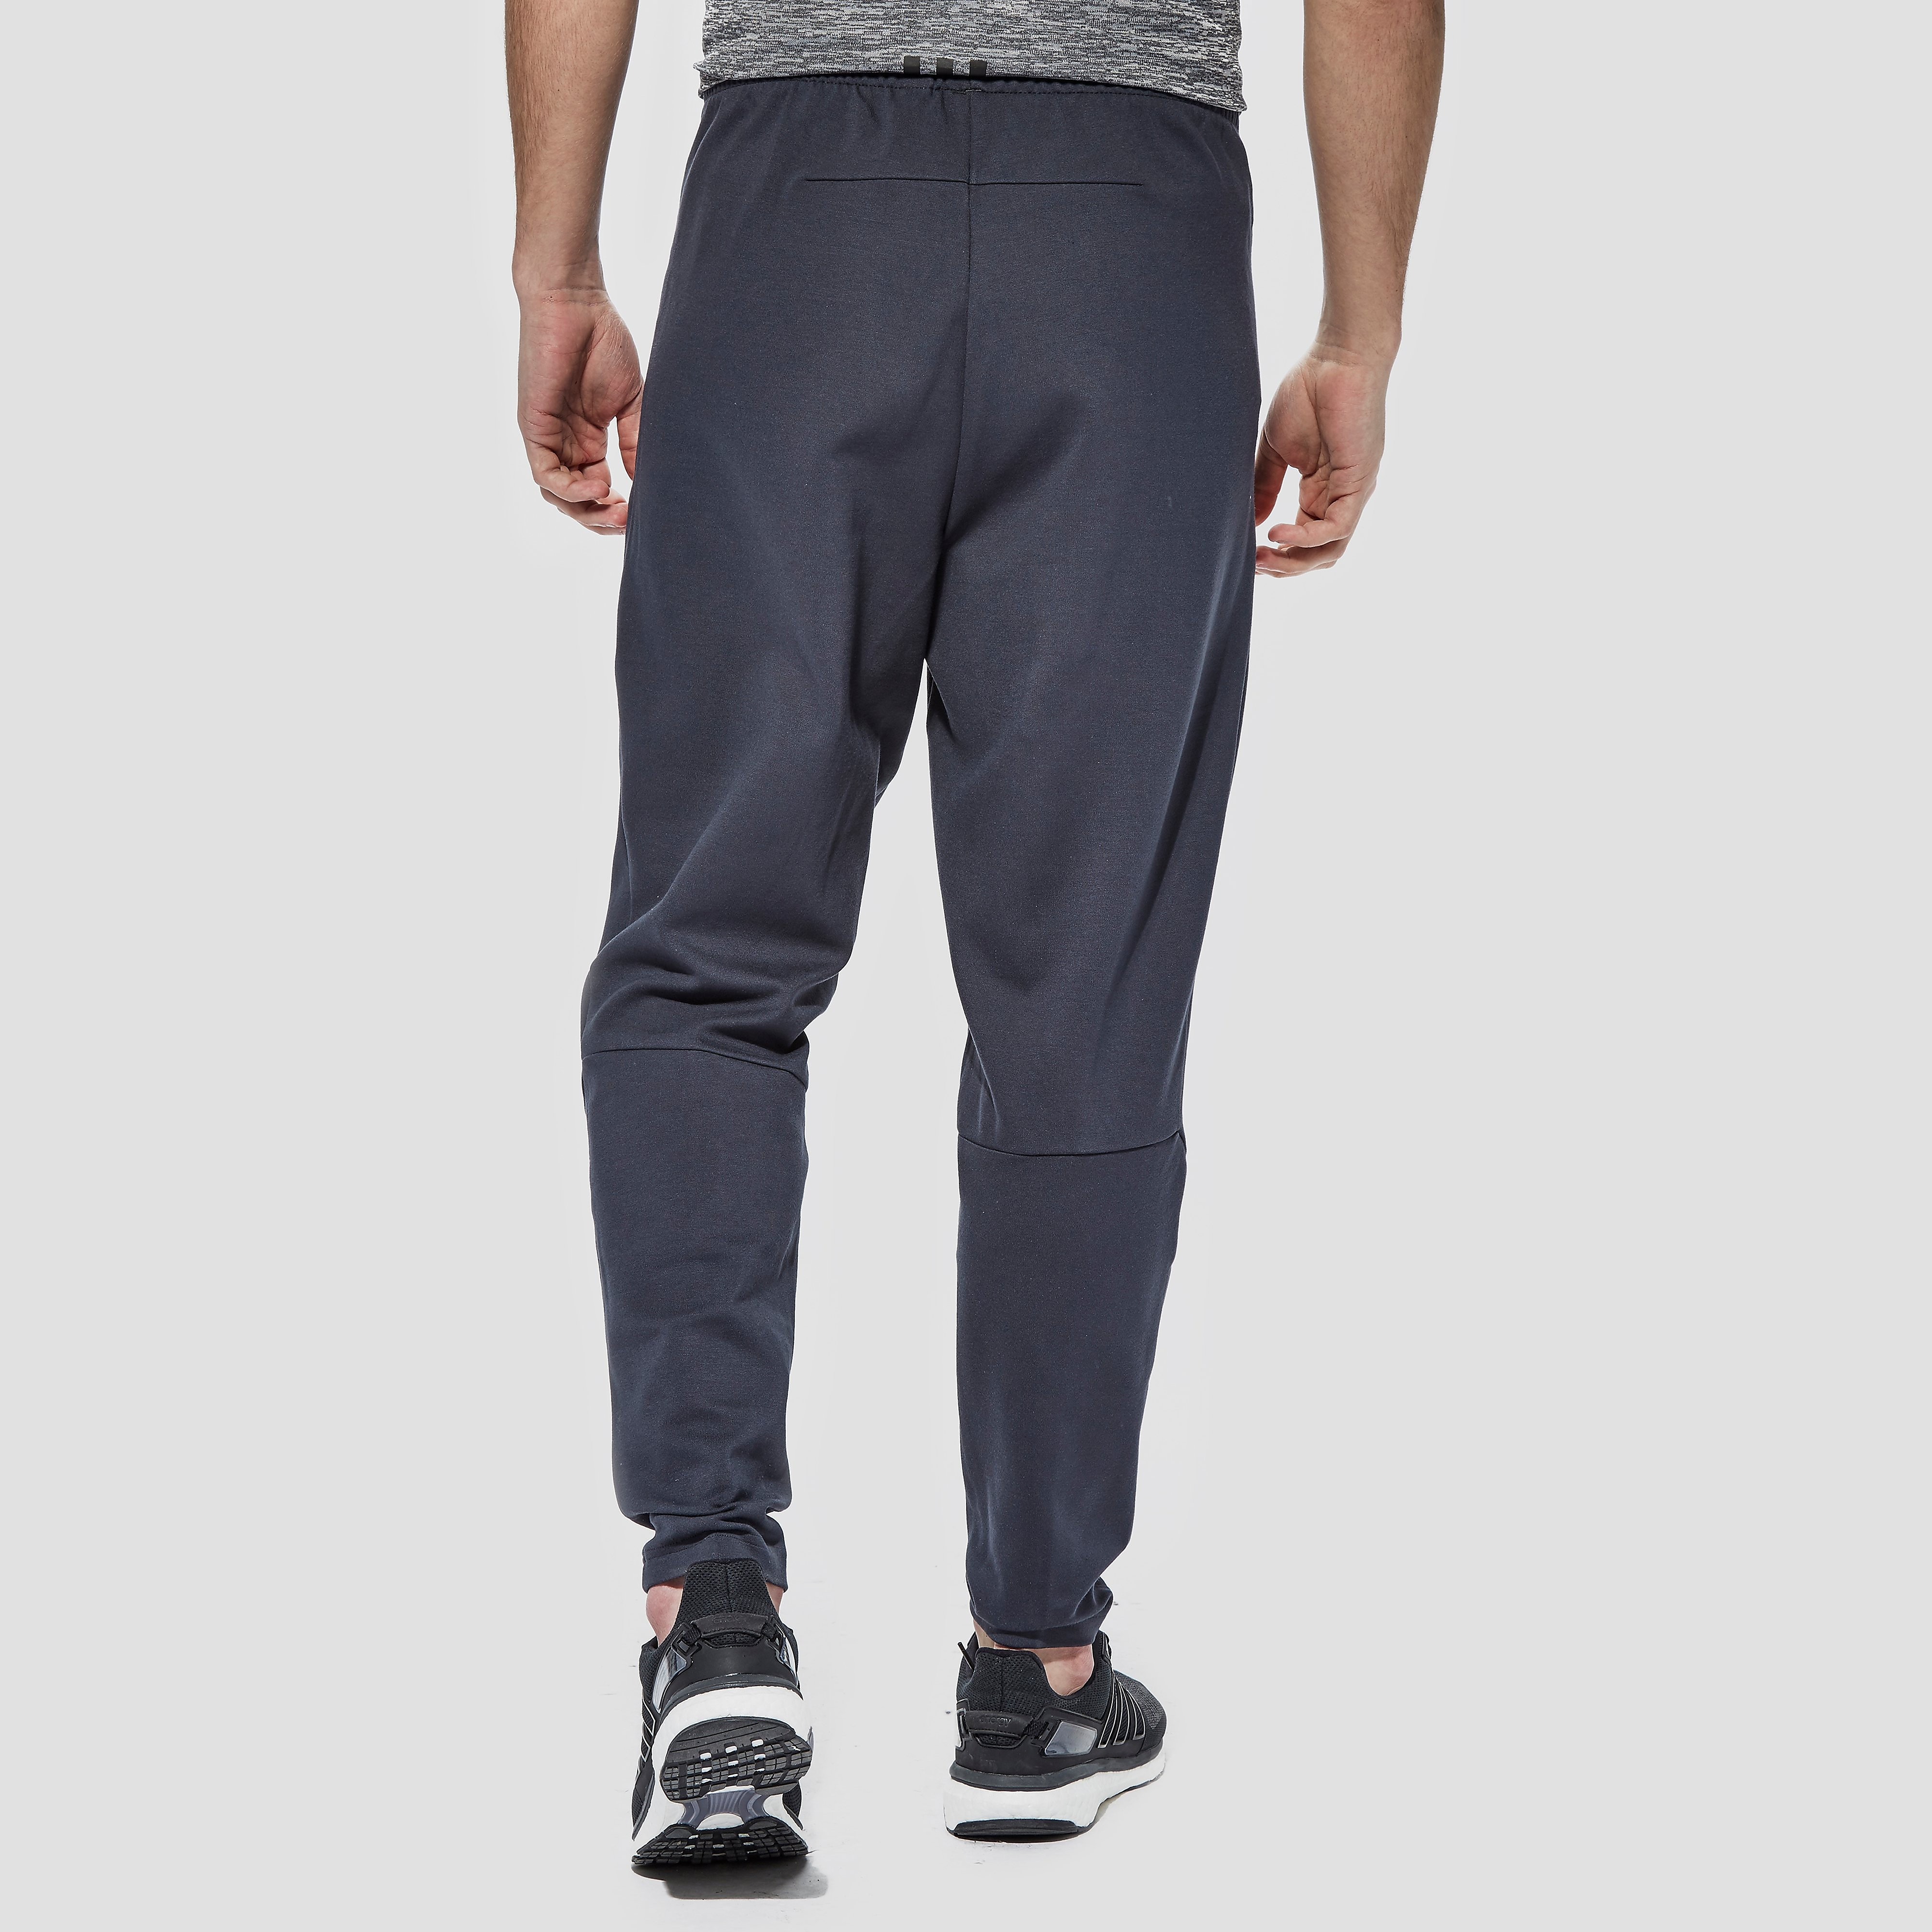 adidas Z.N.E Melbourne Men's Tennis Pants